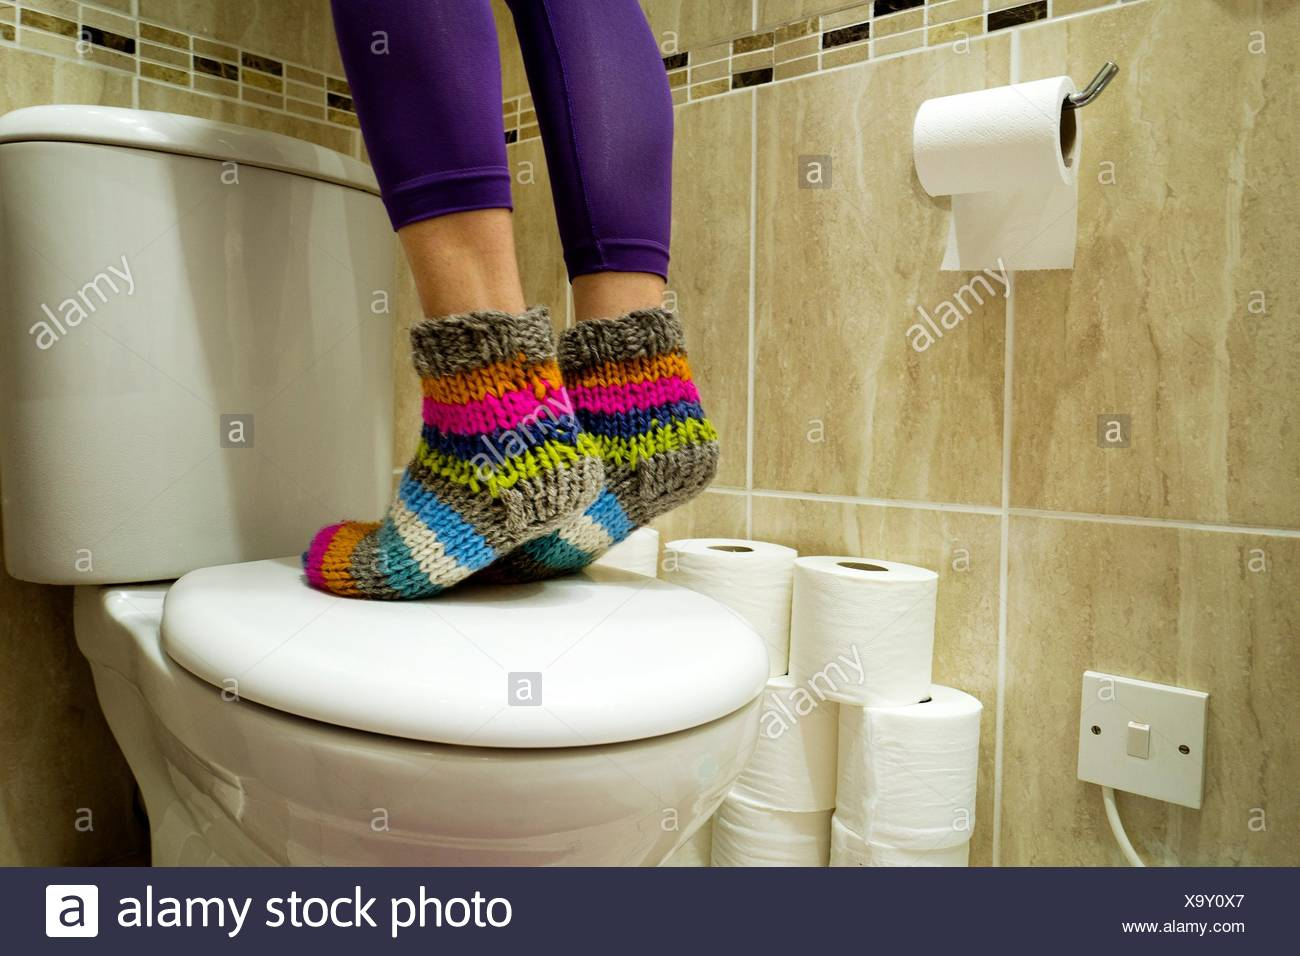 Astonishing Feet Of A Woman With Brightly Colored Socks Standing On A Creativecarmelina Interior Chair Design Creativecarmelinacom